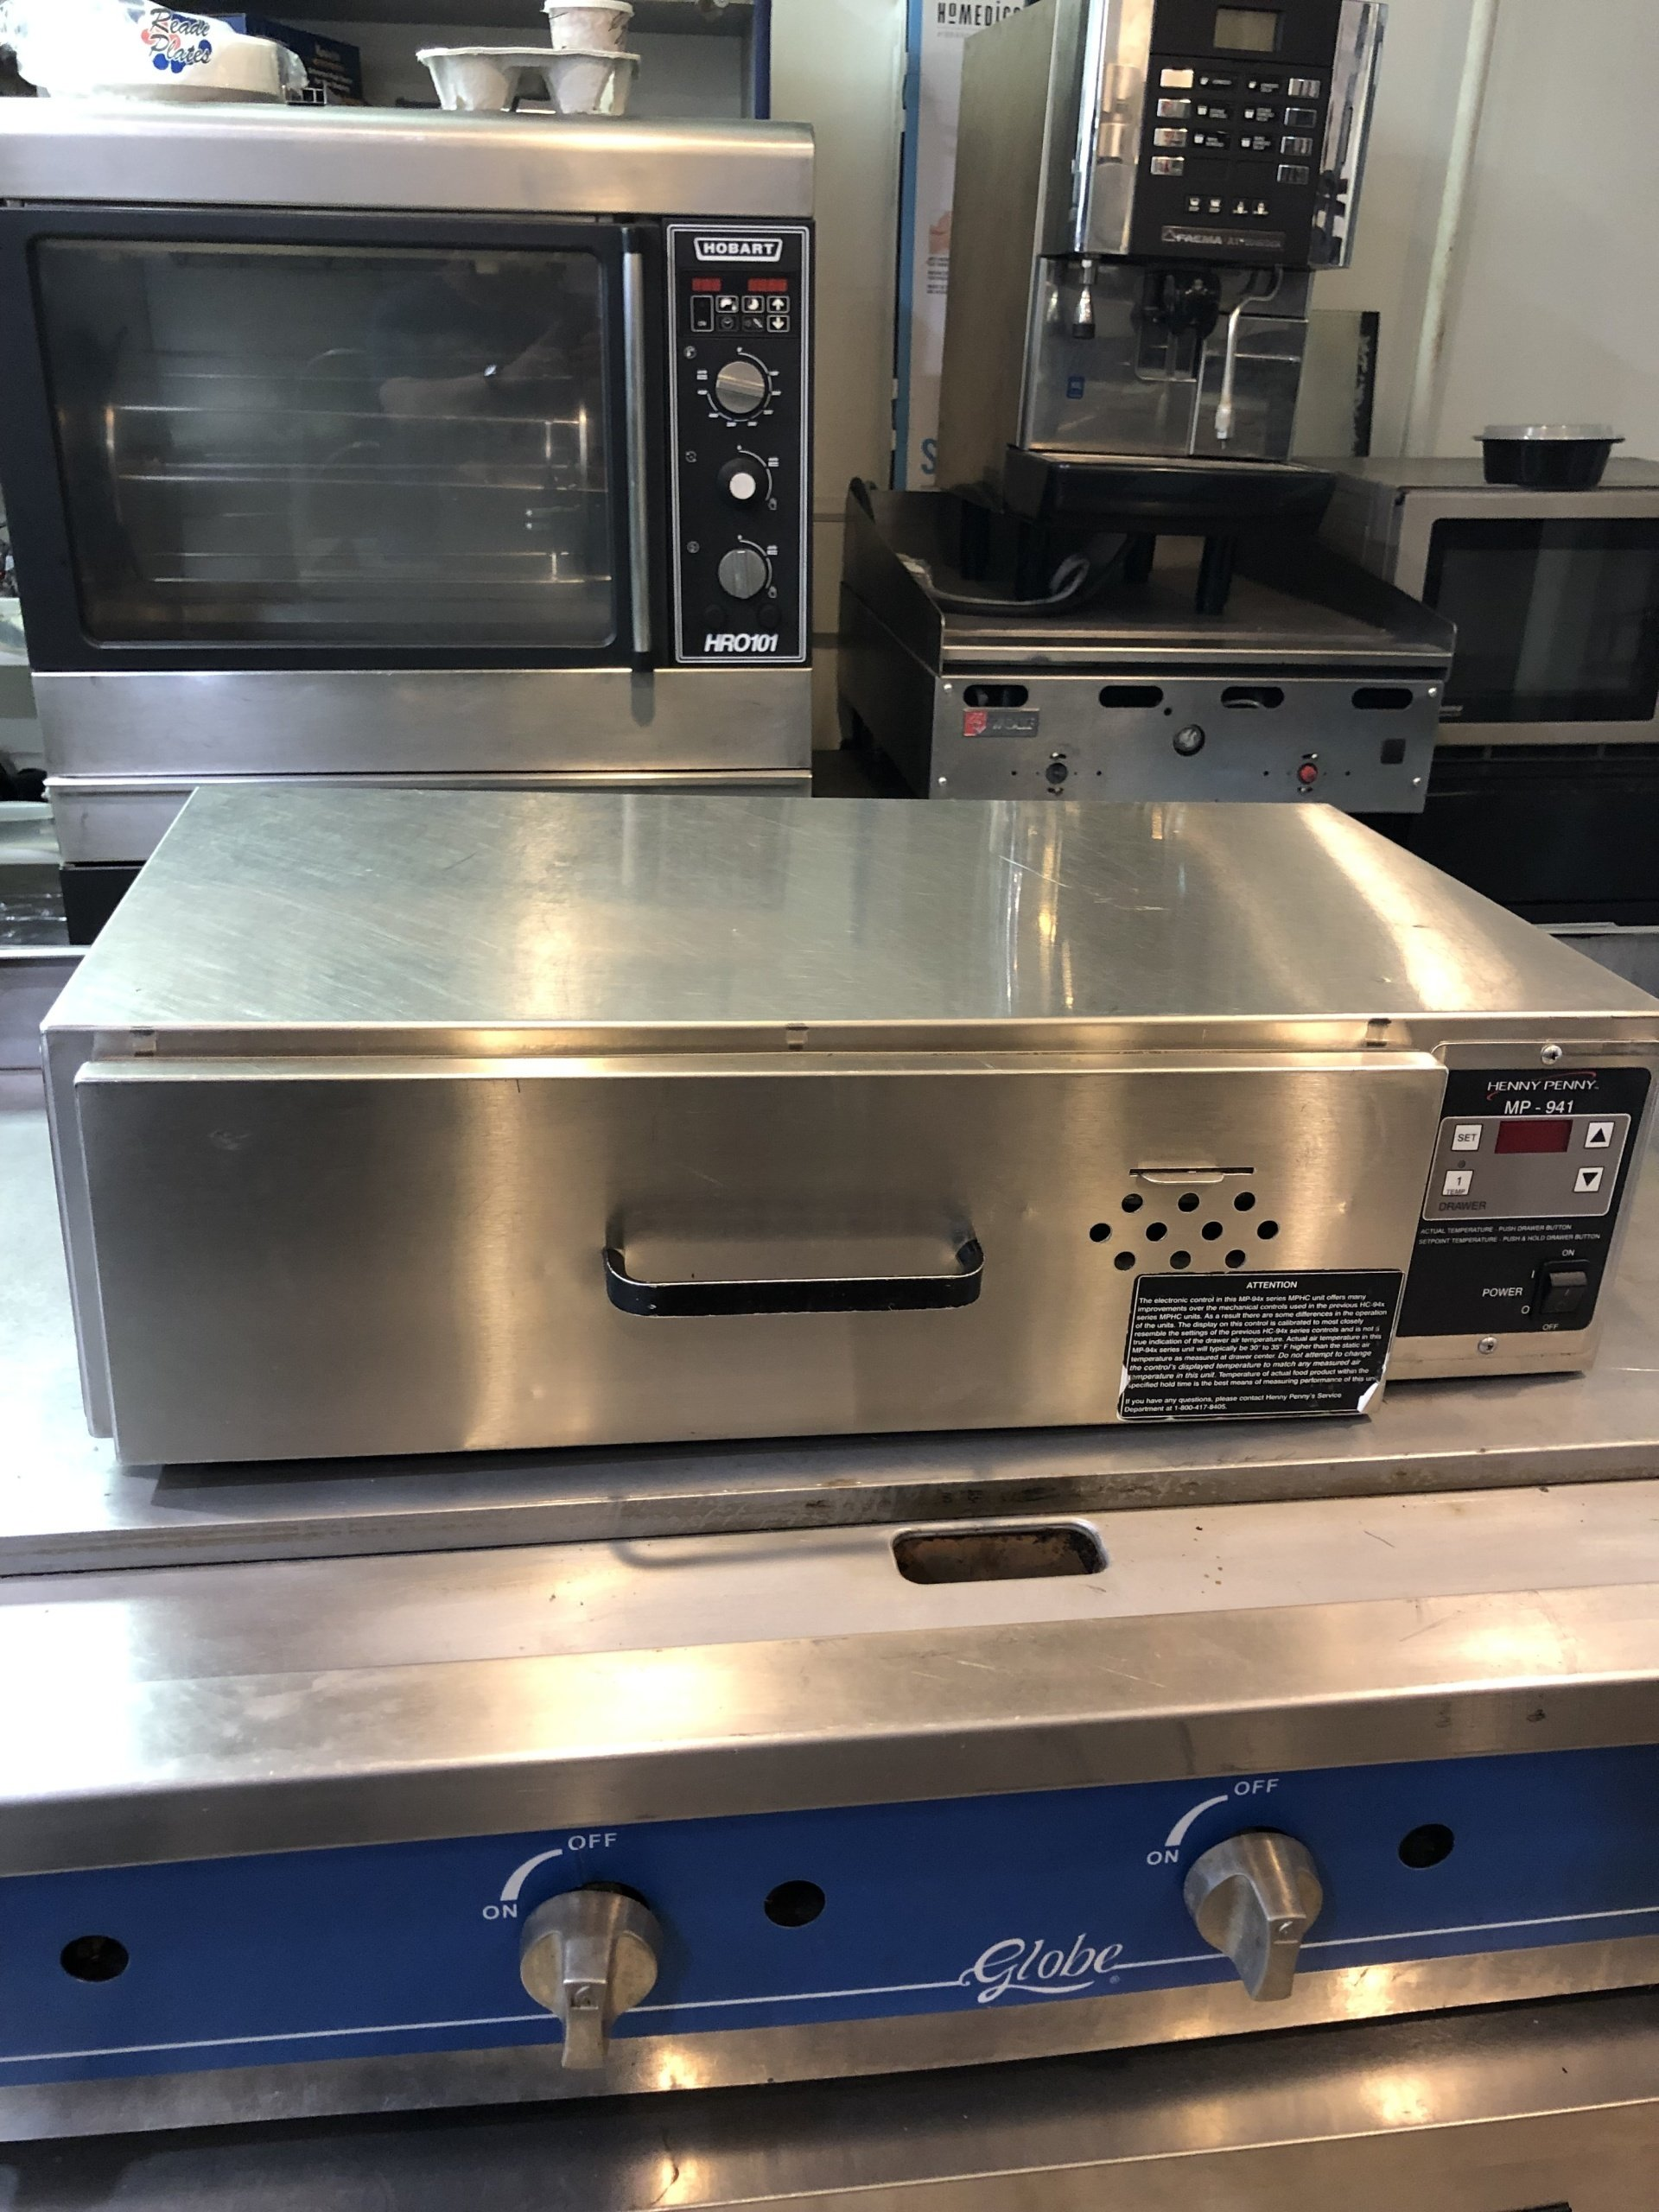 Buy Used Restaurant Equipment Inventory Corona Ny